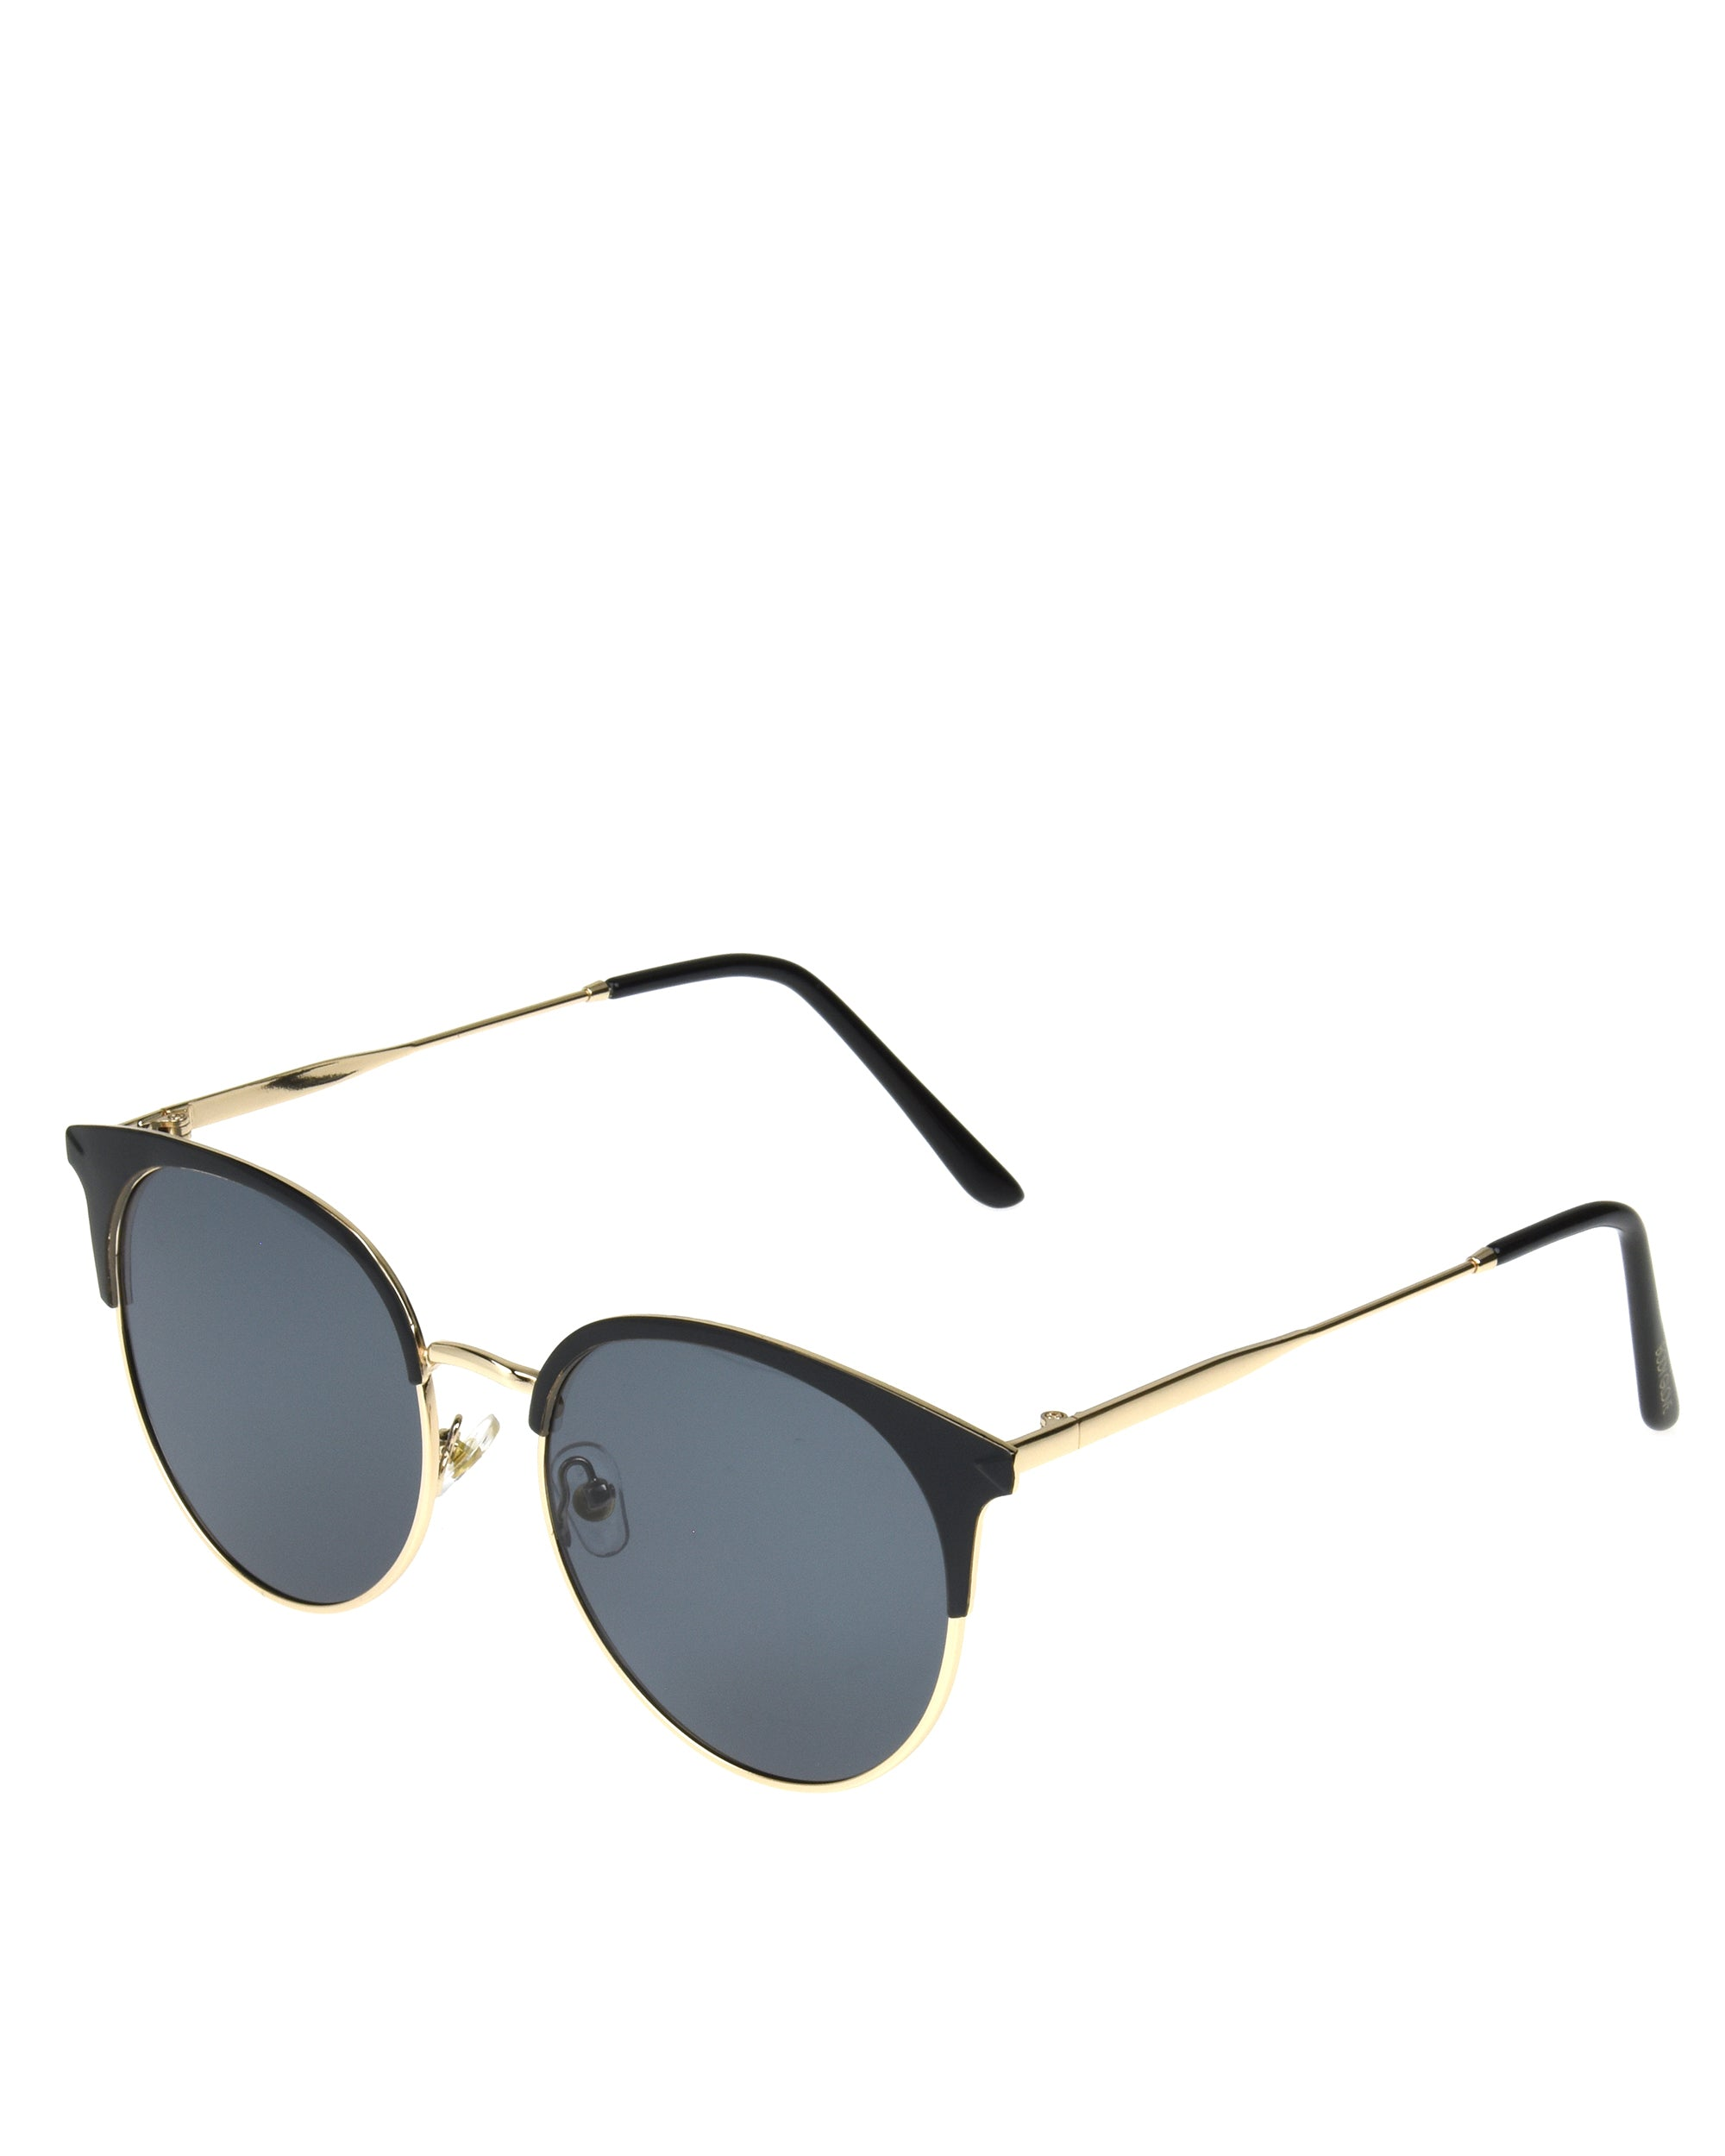 Women's BGL 2006 Shiny Black with Gold Metal Sunglasses - Black/Gold